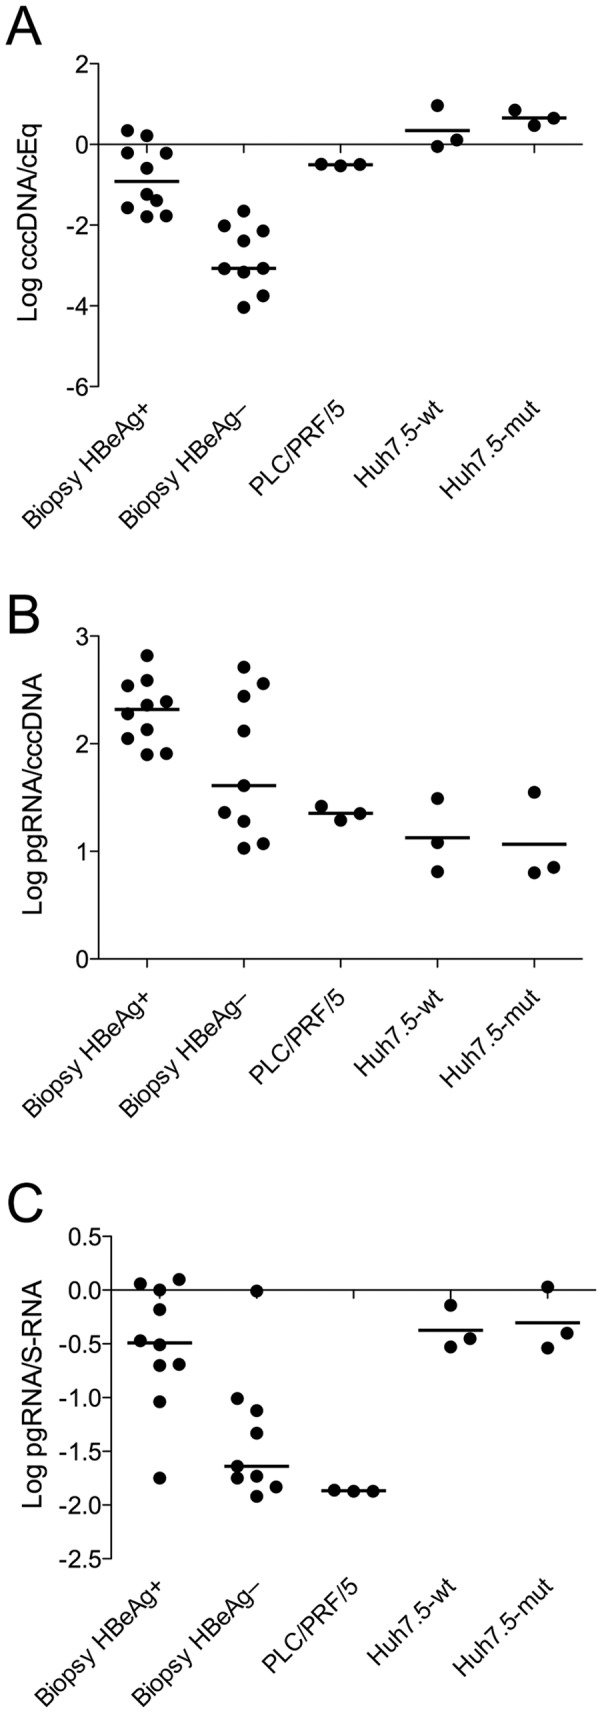 Levels of cccDNA and HBV RNA in vivo and in vitro. The cccDNA levels (A) and pgRNA per cccDNA (B), as well as pgRNA/cccDNA ratios (C) were higher in liver tissue from HBeAg-positive as compared with HBeAg-negative patients. In PLC/PRF/5 cells, the cccDNA PCR amplifies integrated HBV DNA (a segment containing the promoter for pgRNA). In these cells which contain multiple integrations of the S region, the pgRNA/S-RNA ratio was low (C). In Huh7.5 cells, the cccDNA levels, pgRNA per cccDNA and ratio between pgRNA and S-RNA were similar in cells transfected with HBV without or with mutations in the core promoter region, indicating that these mutations have low impact on pgRNA transcription.